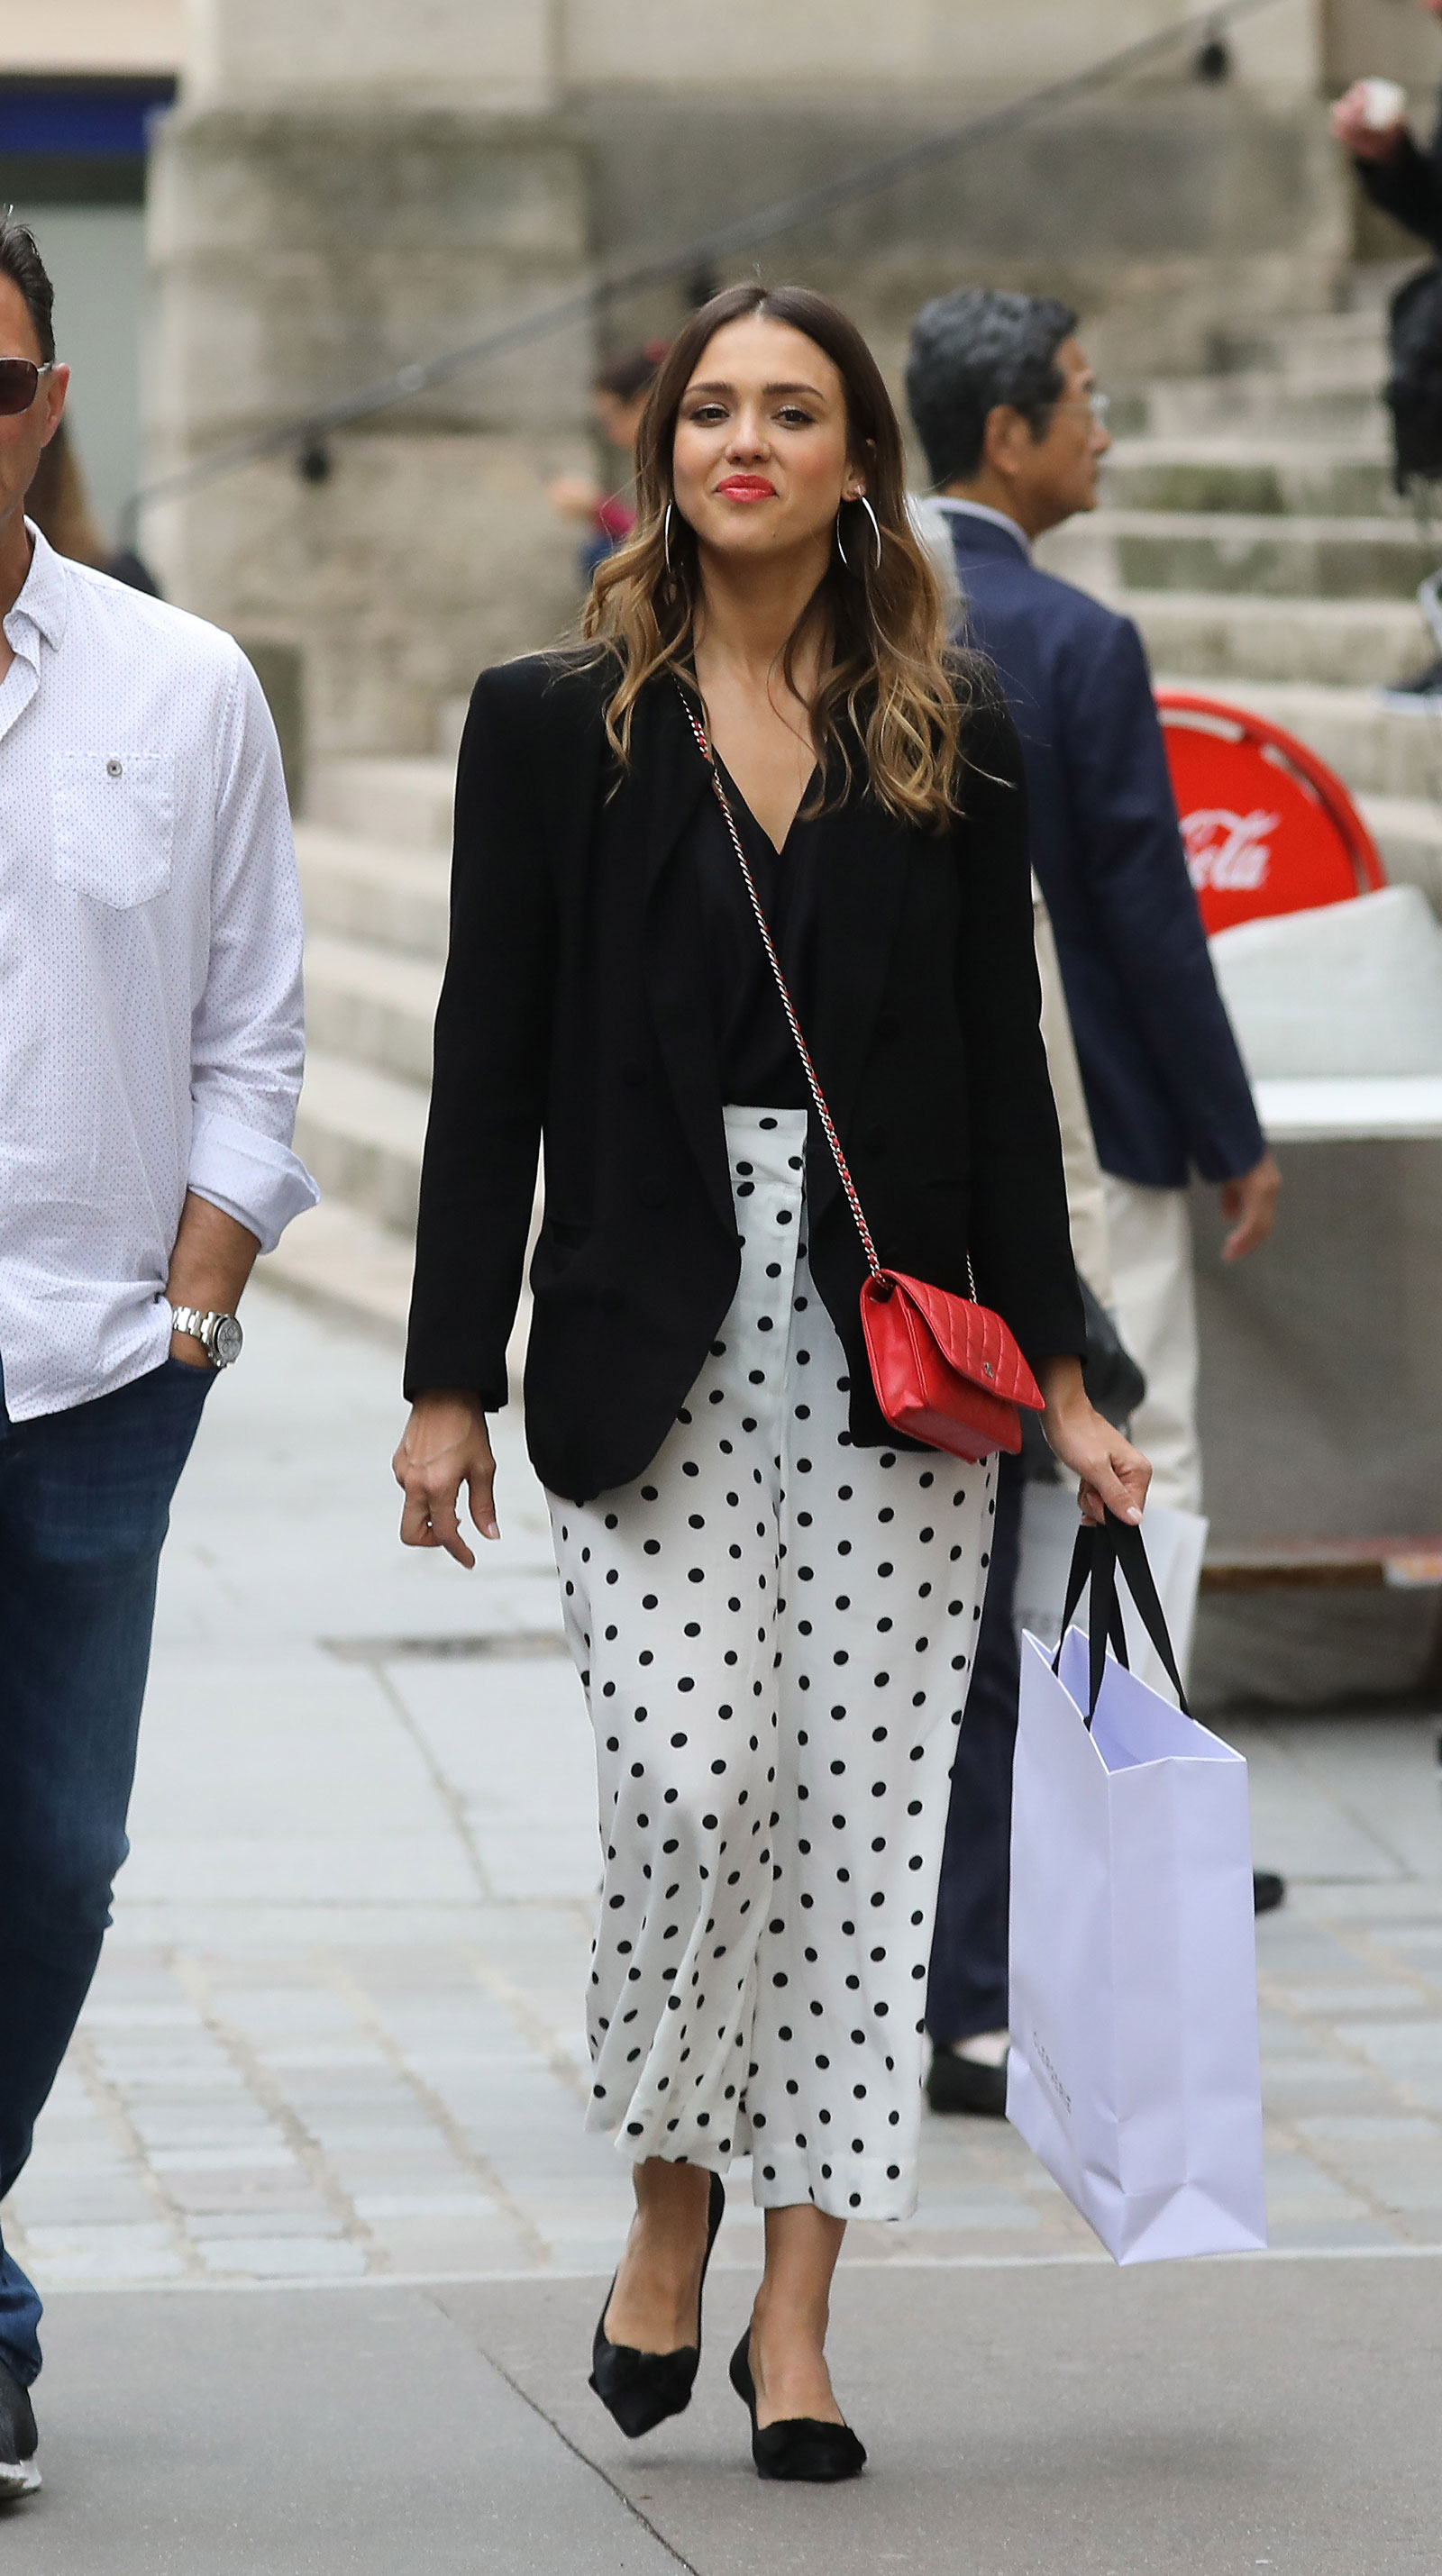 Jessica Alba Polka Dot Culotte Pants and Chanel Bag